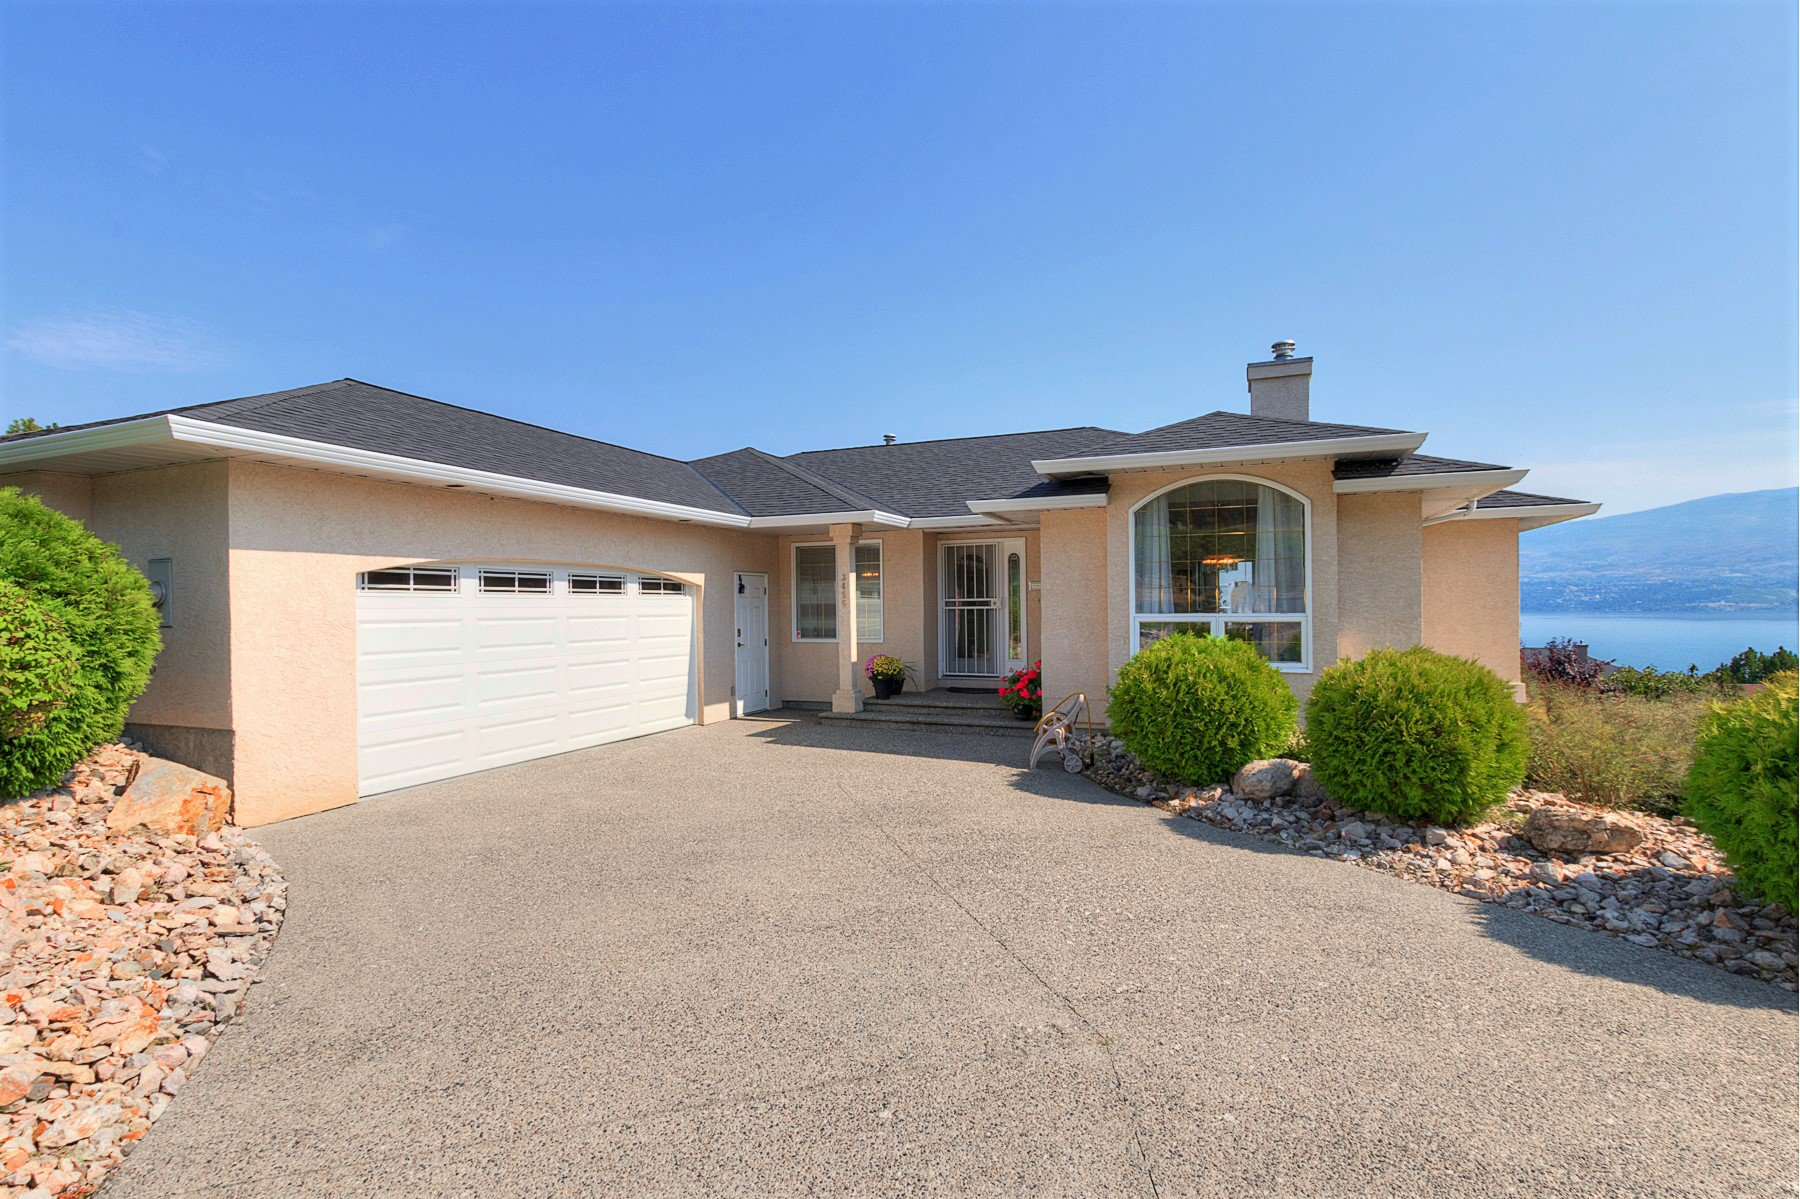 Main Photo: 3455 Apple Way Boulevard in West Kelowna: Lakeview Heights House for sale (Central Okanagan)  : MLS®# 10167974